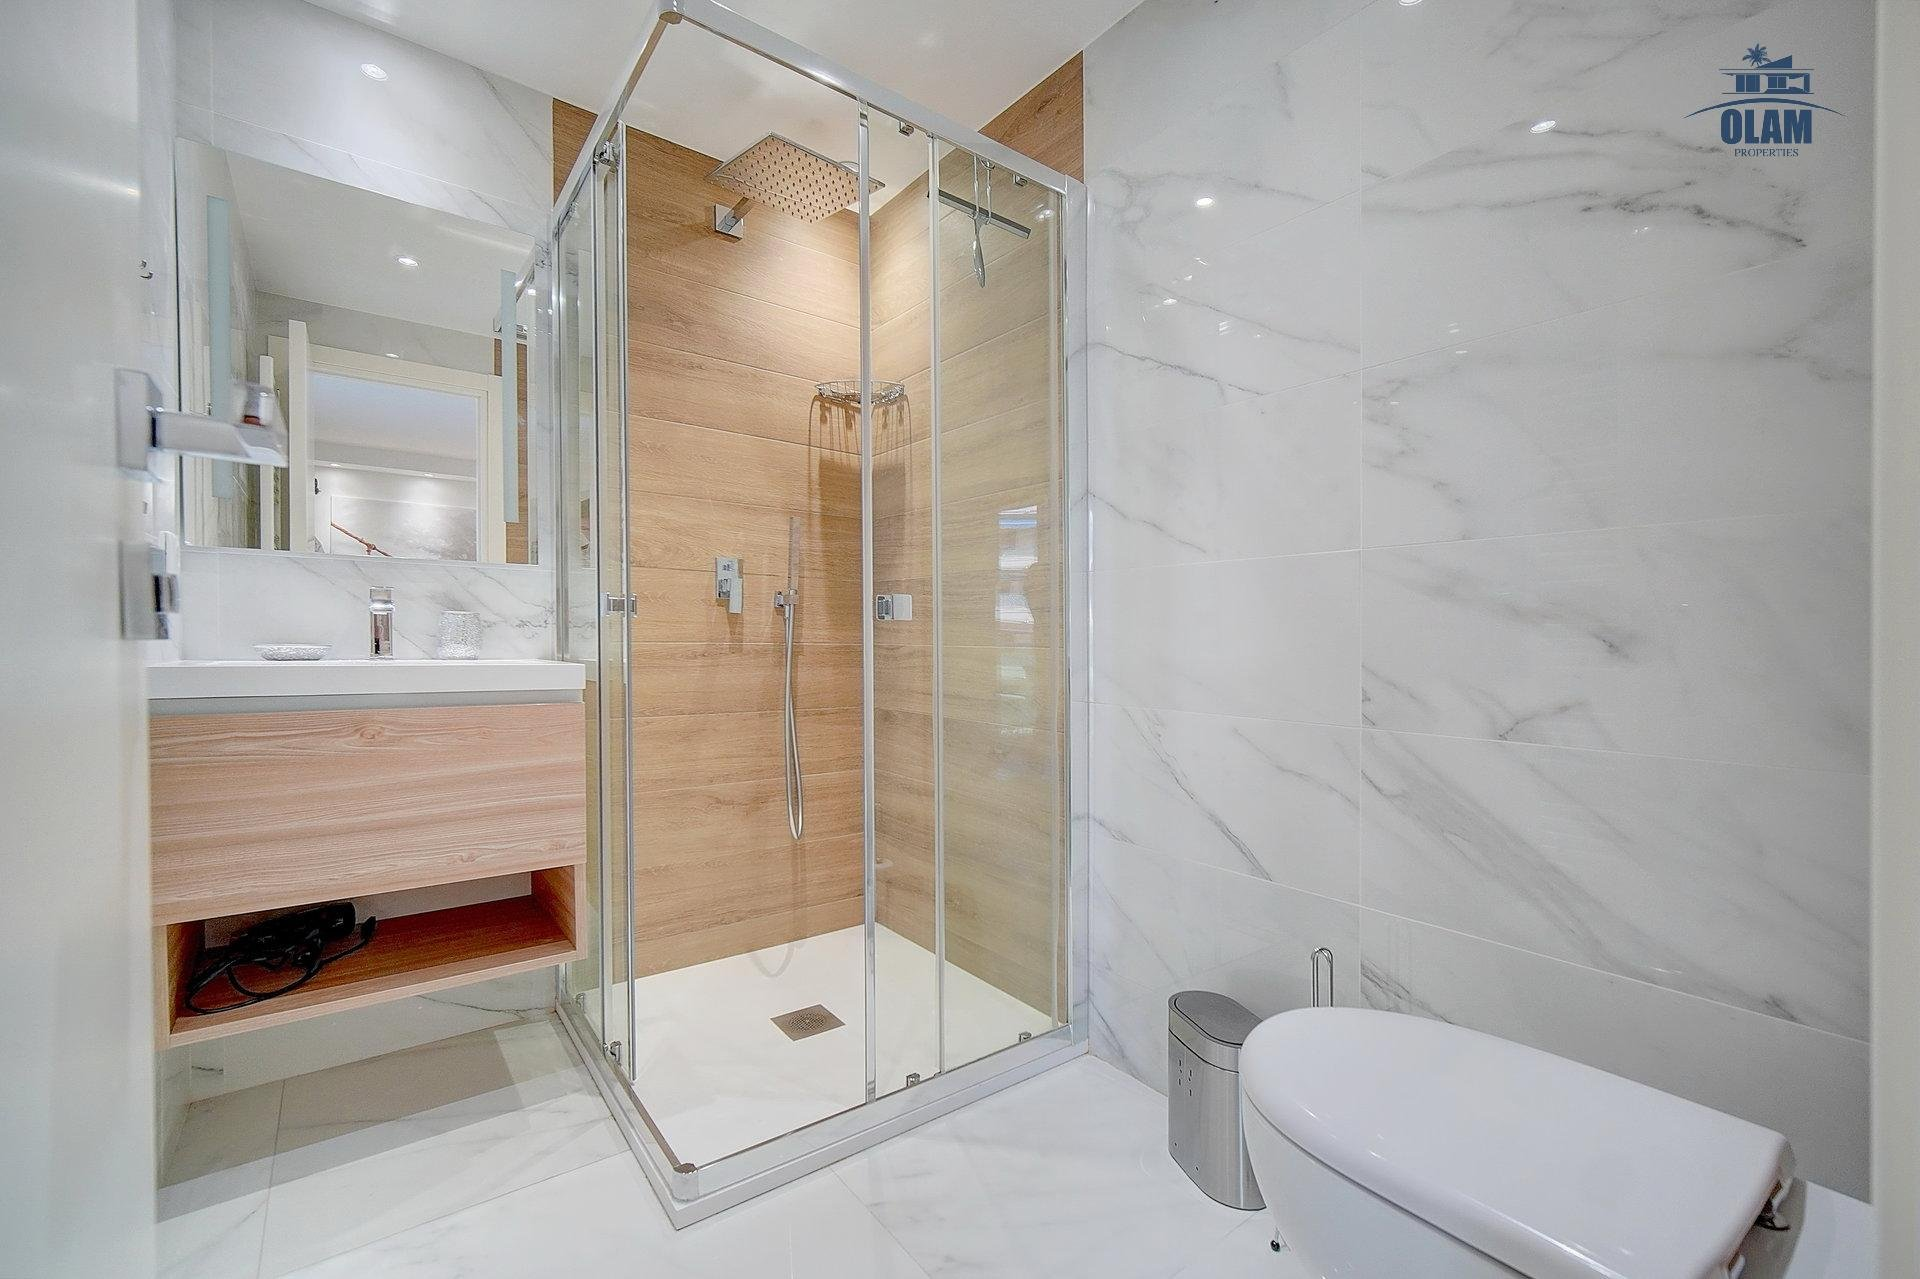 Shower room, toilet, Cannes, Croisette, French Riviera